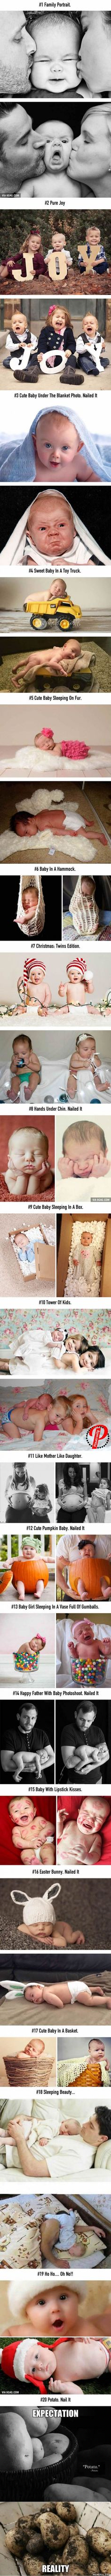 20 Hilarious Baby Photoshoot Fails